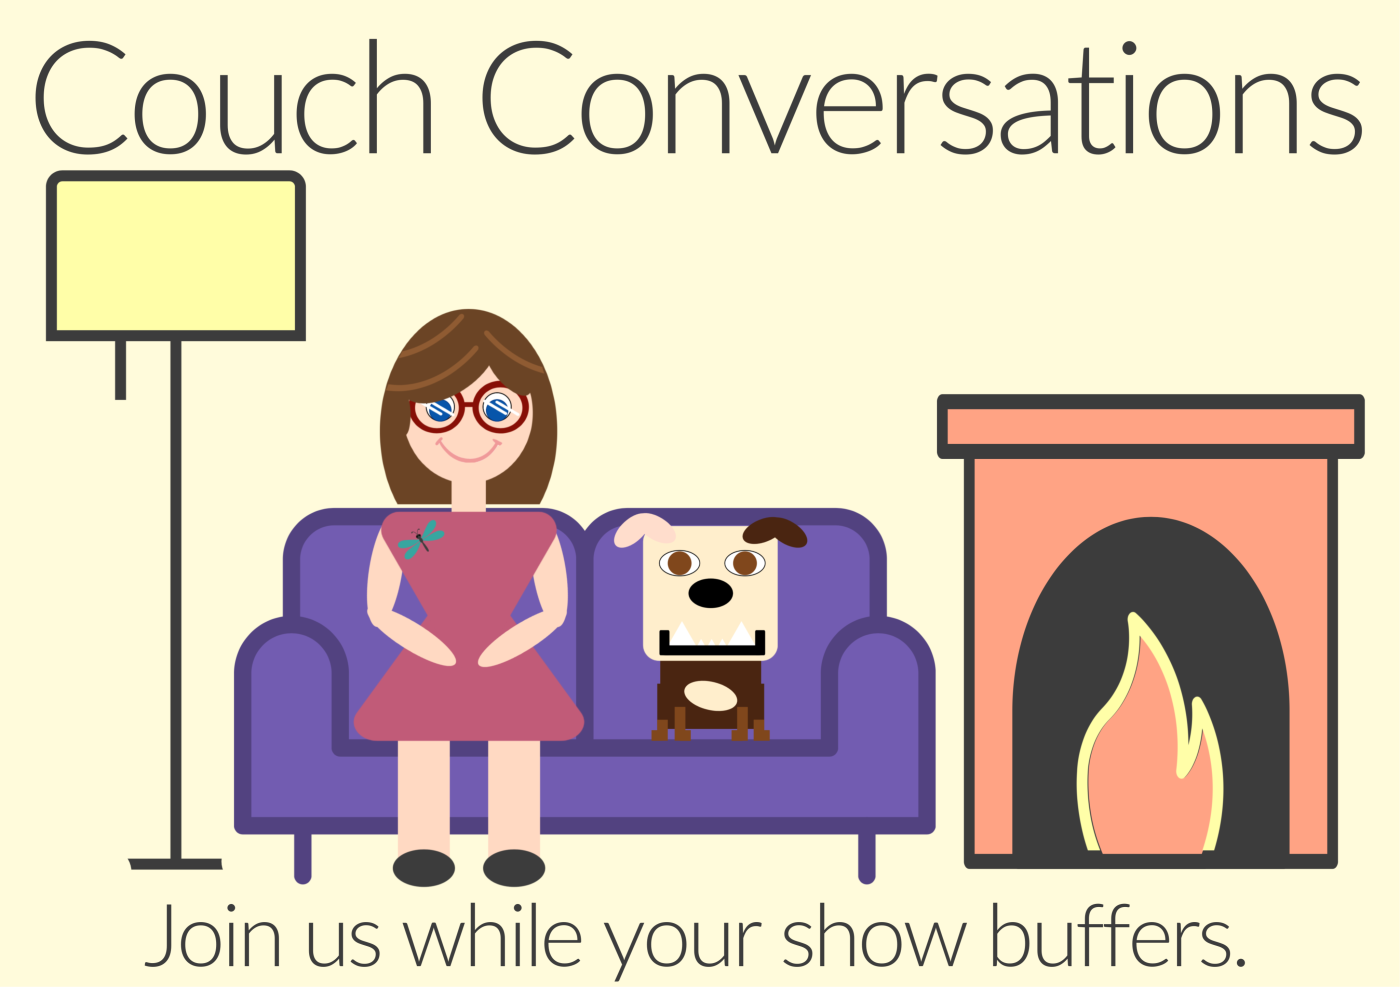 A cartoon rendering of Heather and Lola sitting on a couch next to a fireplace and a lamp. The tagline reads 'Join us while your show buffers.'